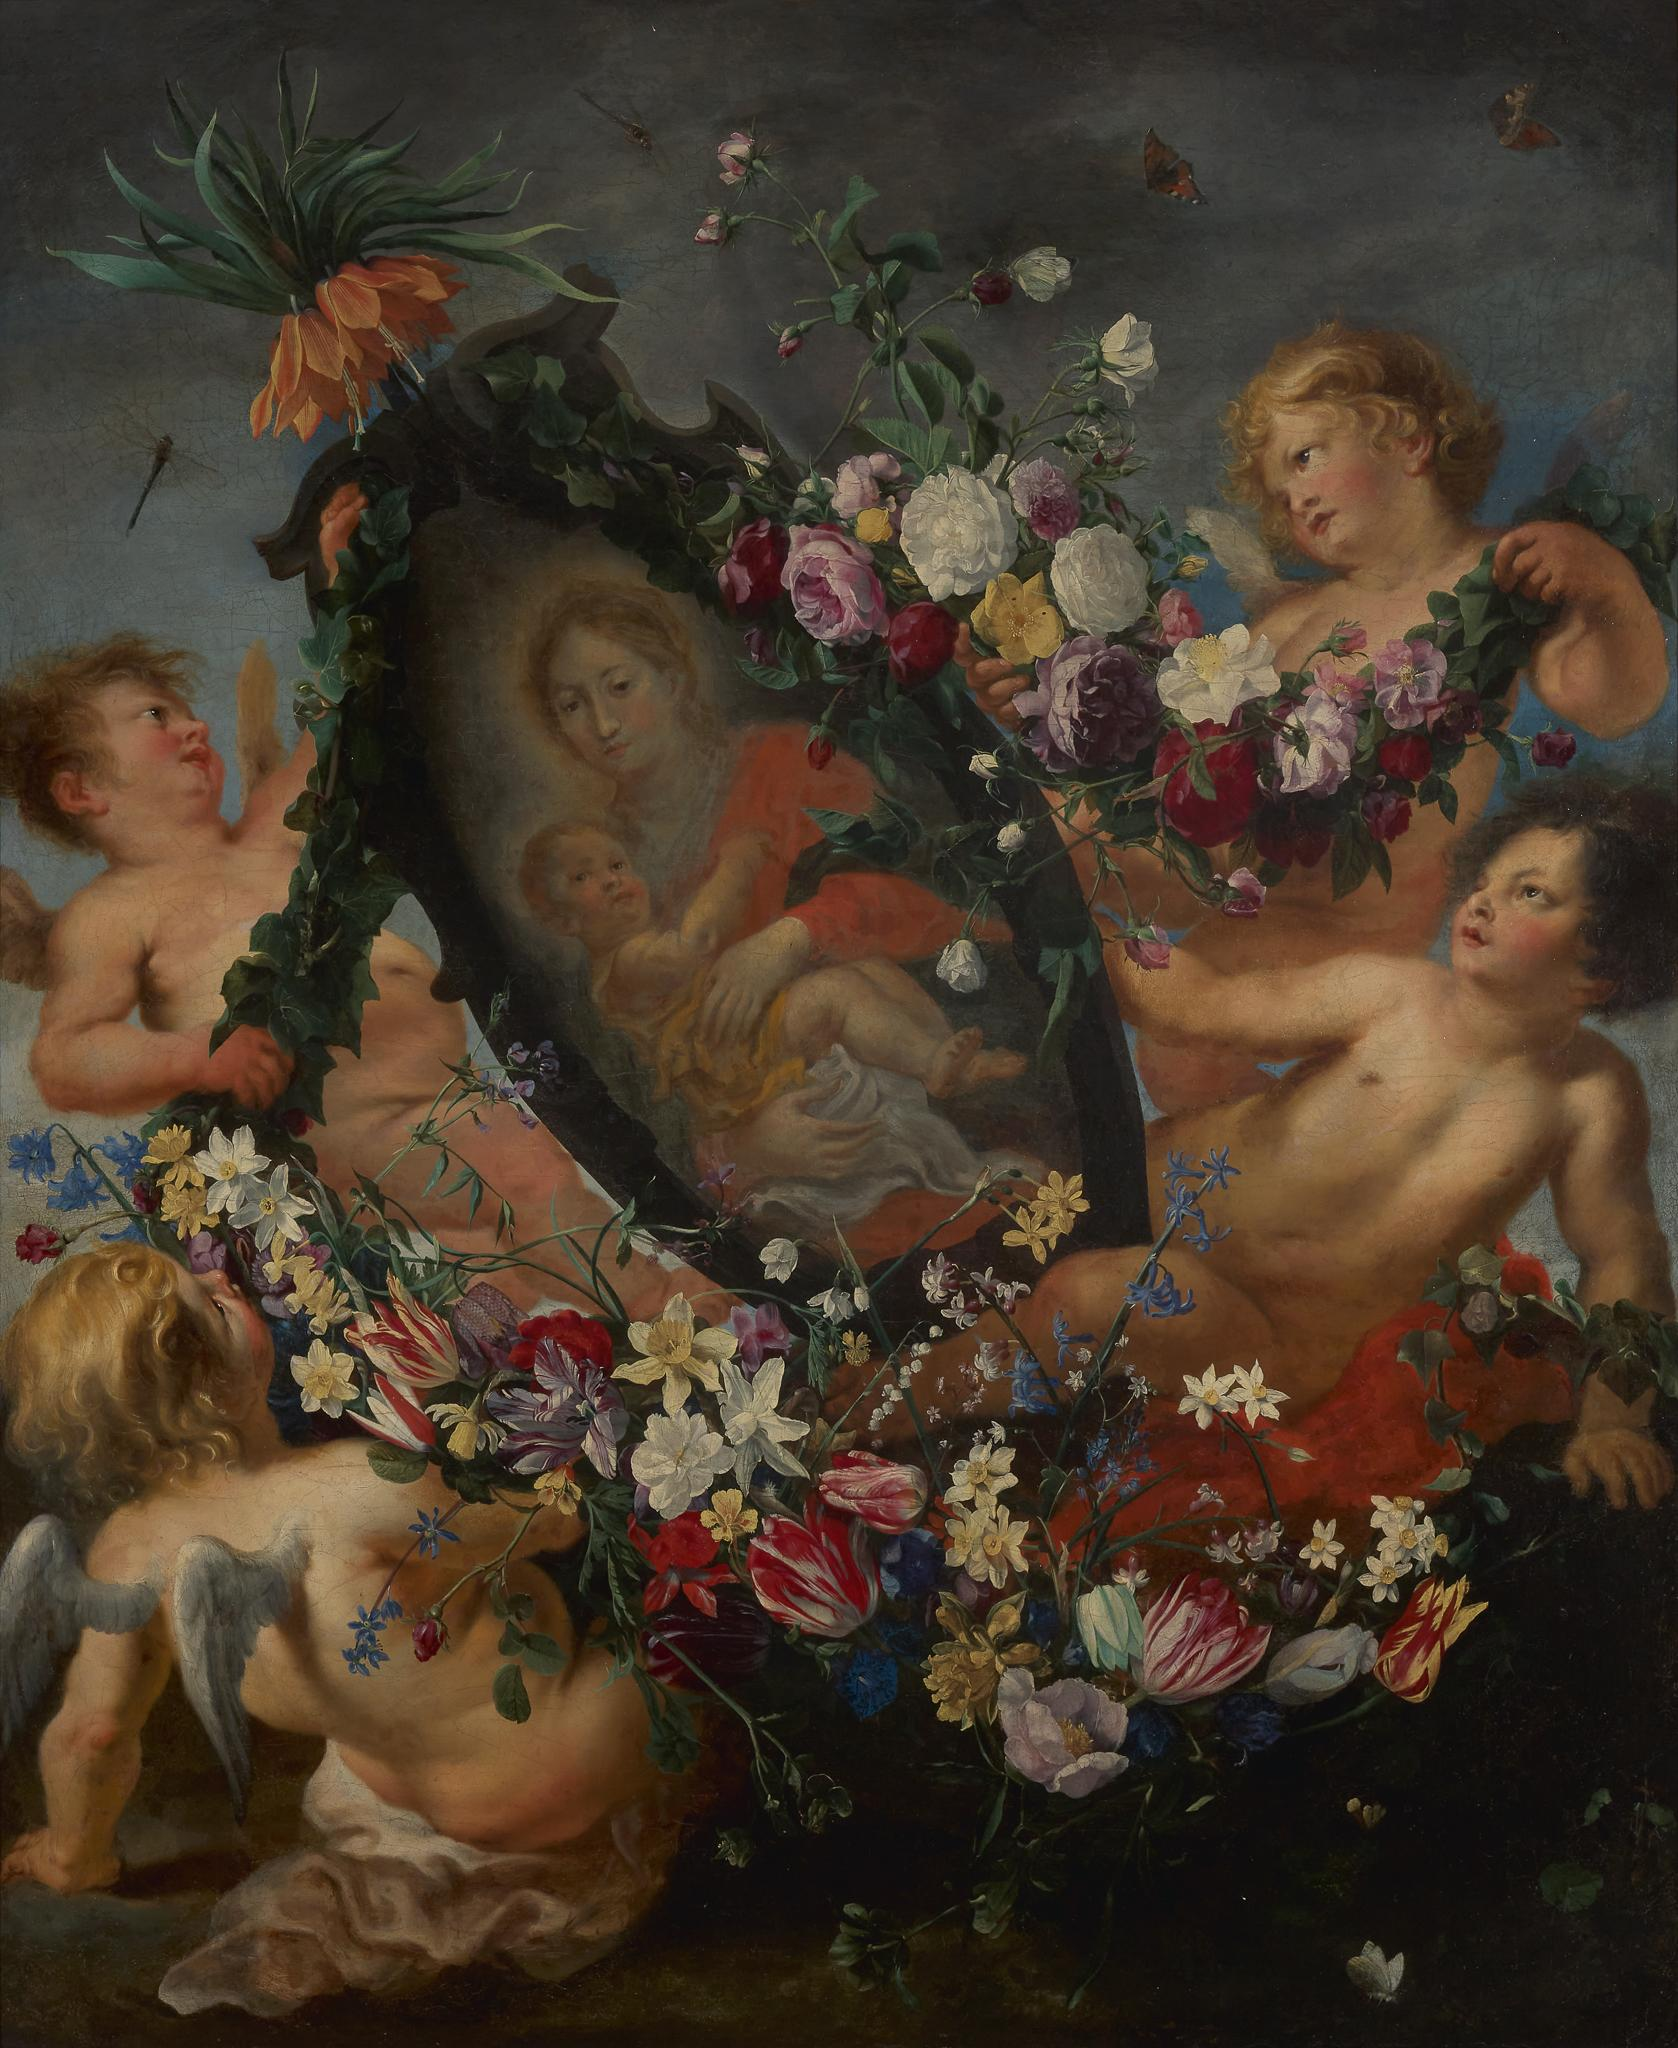 Flower guirlande containing the Holy Mother and Child, carried by four angels